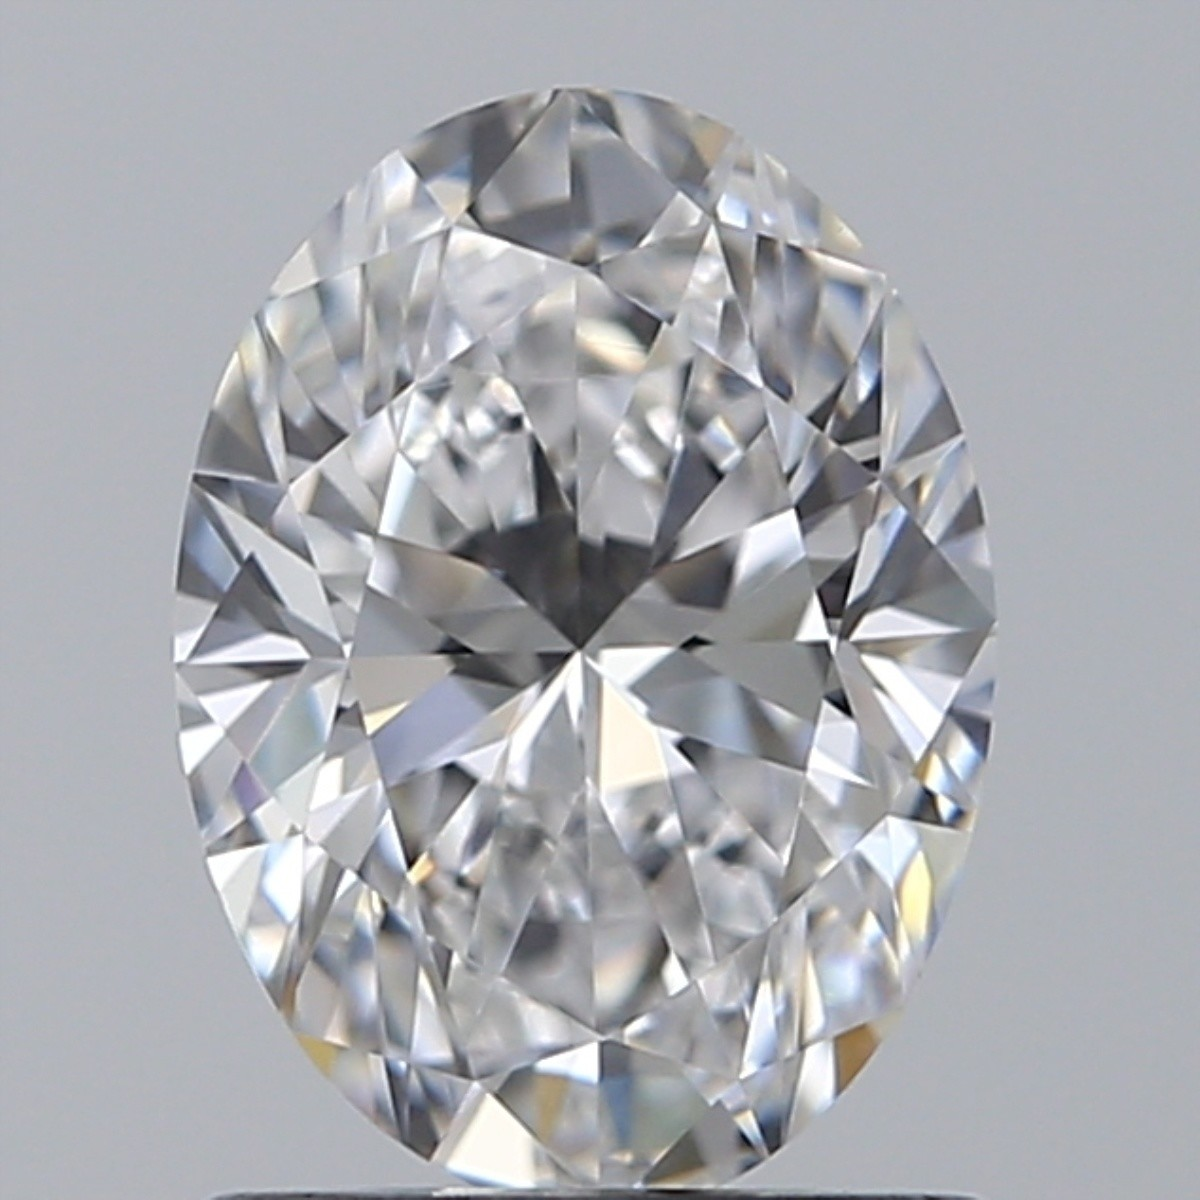 1.01 Carat Oval Diamond (D/VVS2)